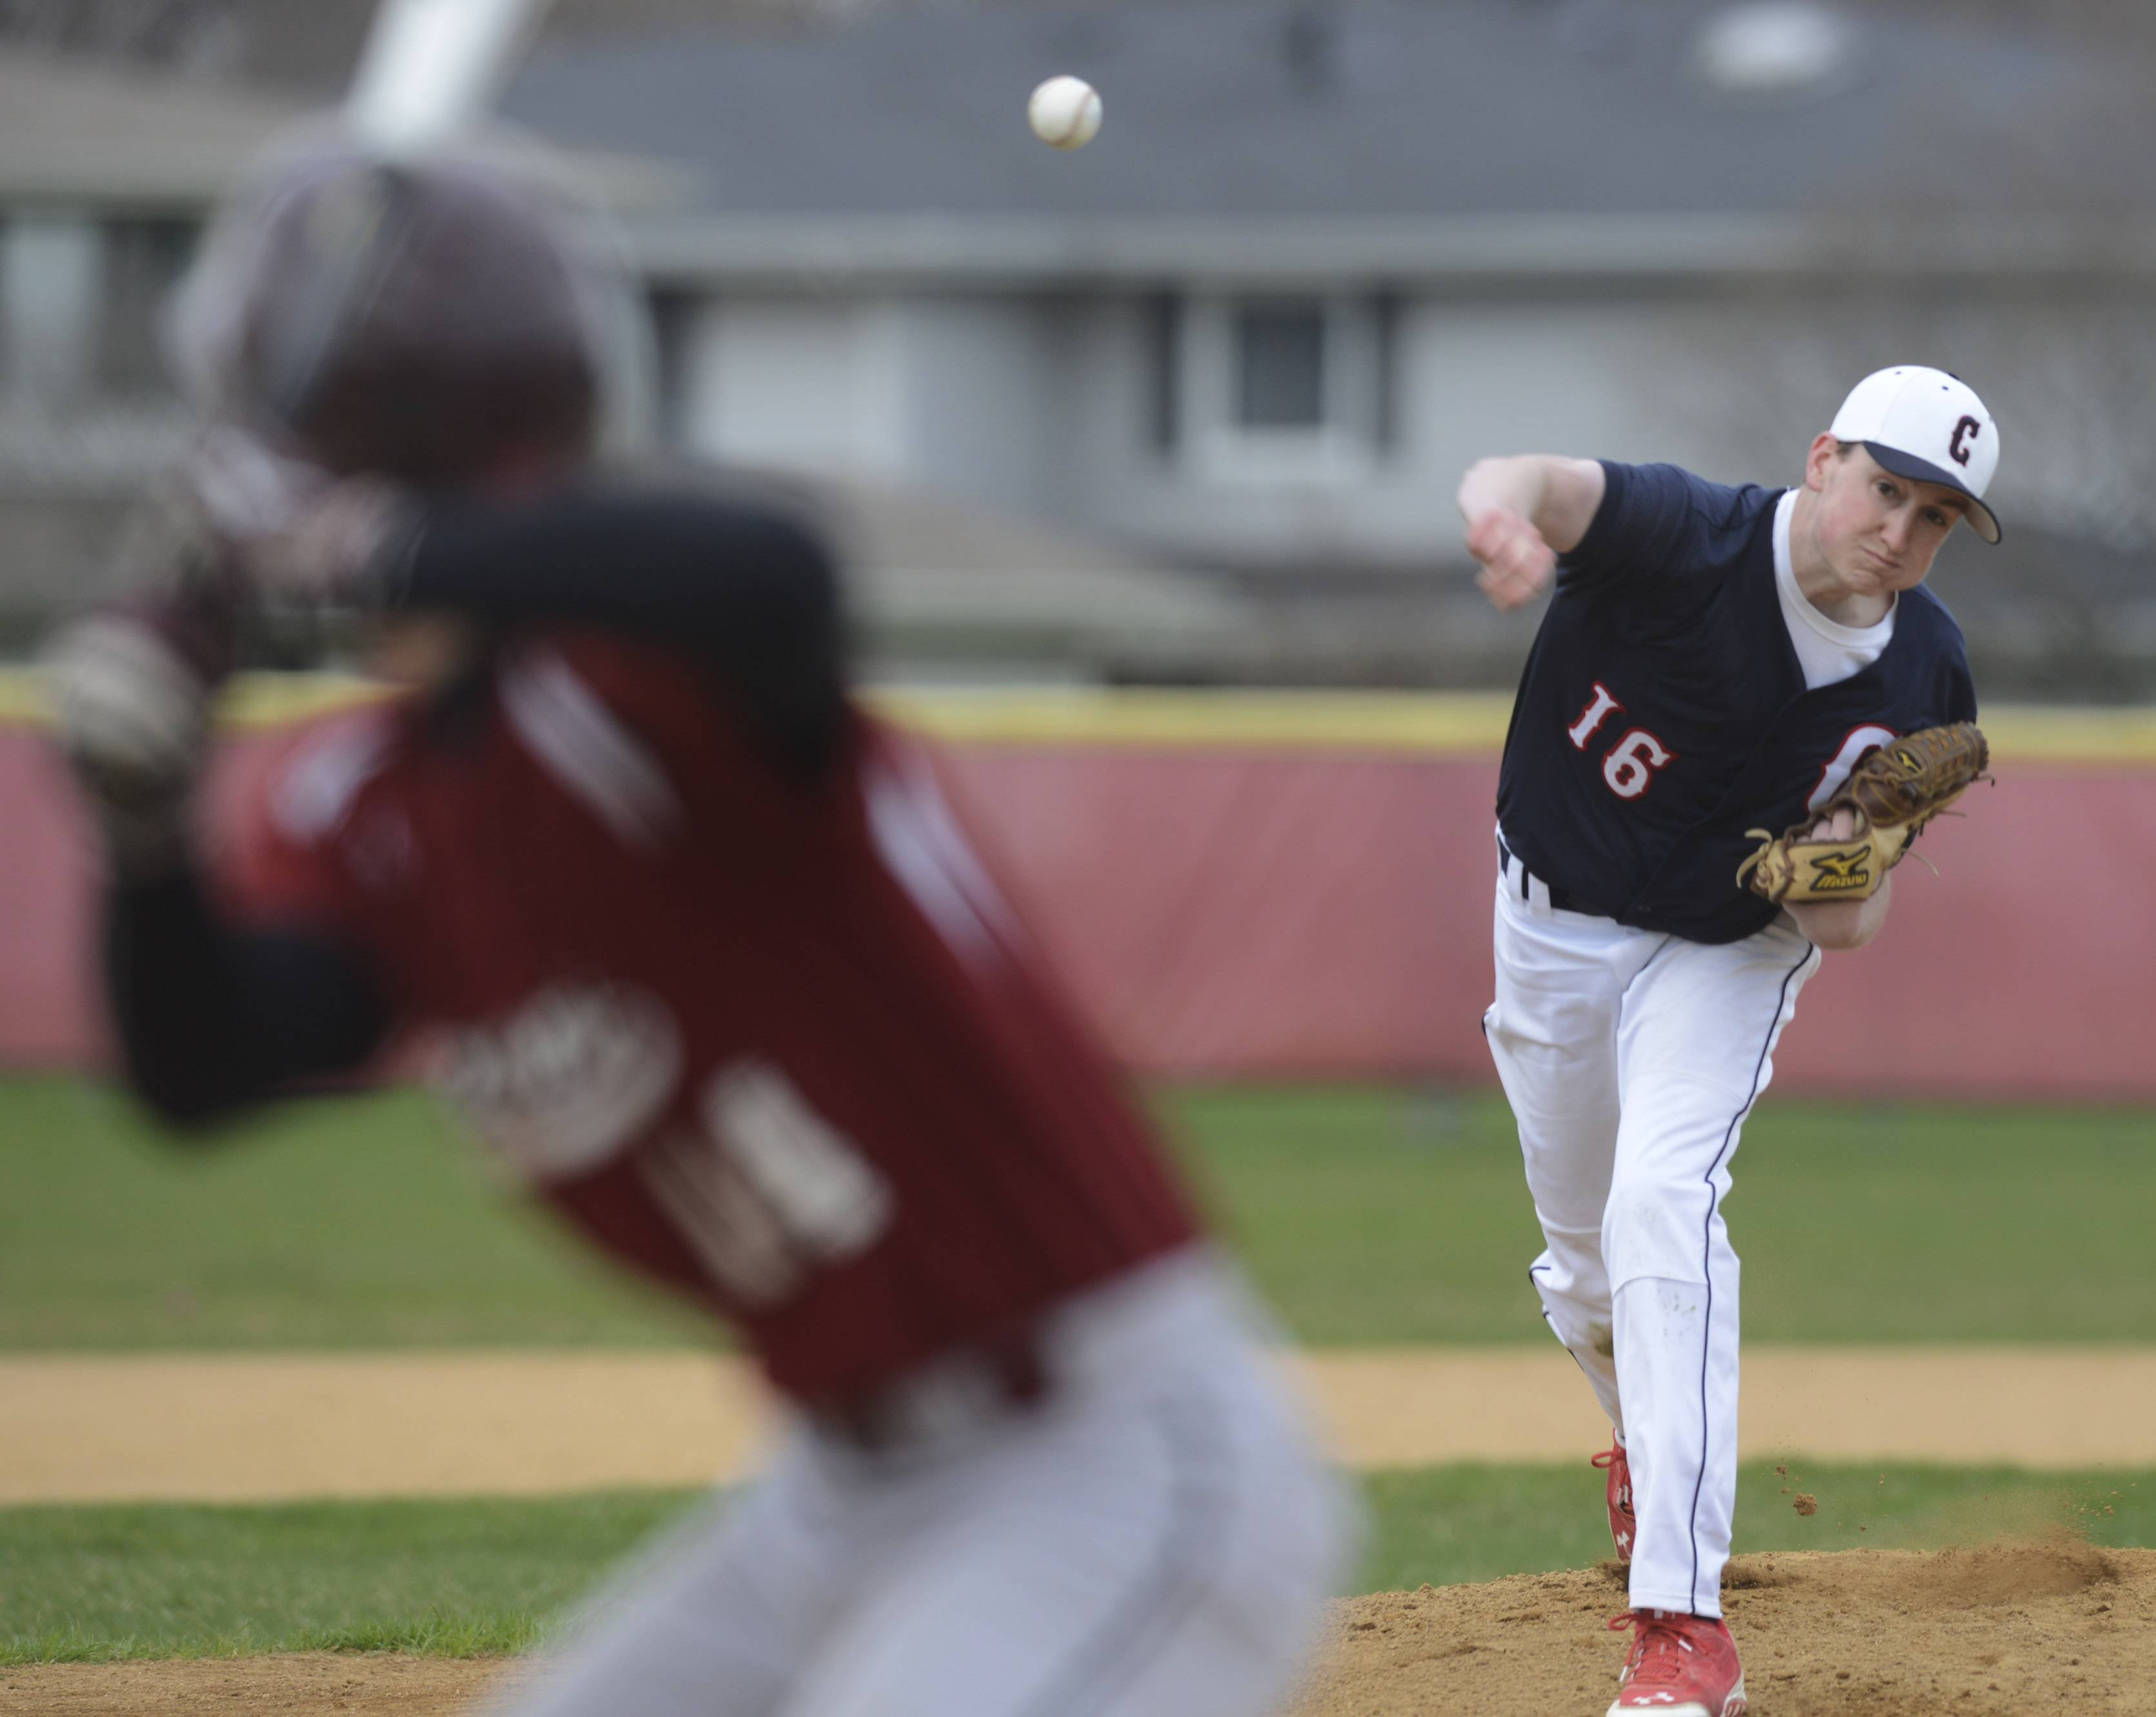 Conant pitcher Luke Downey delivers a pitch during Wednesday's game at Schaumburg.